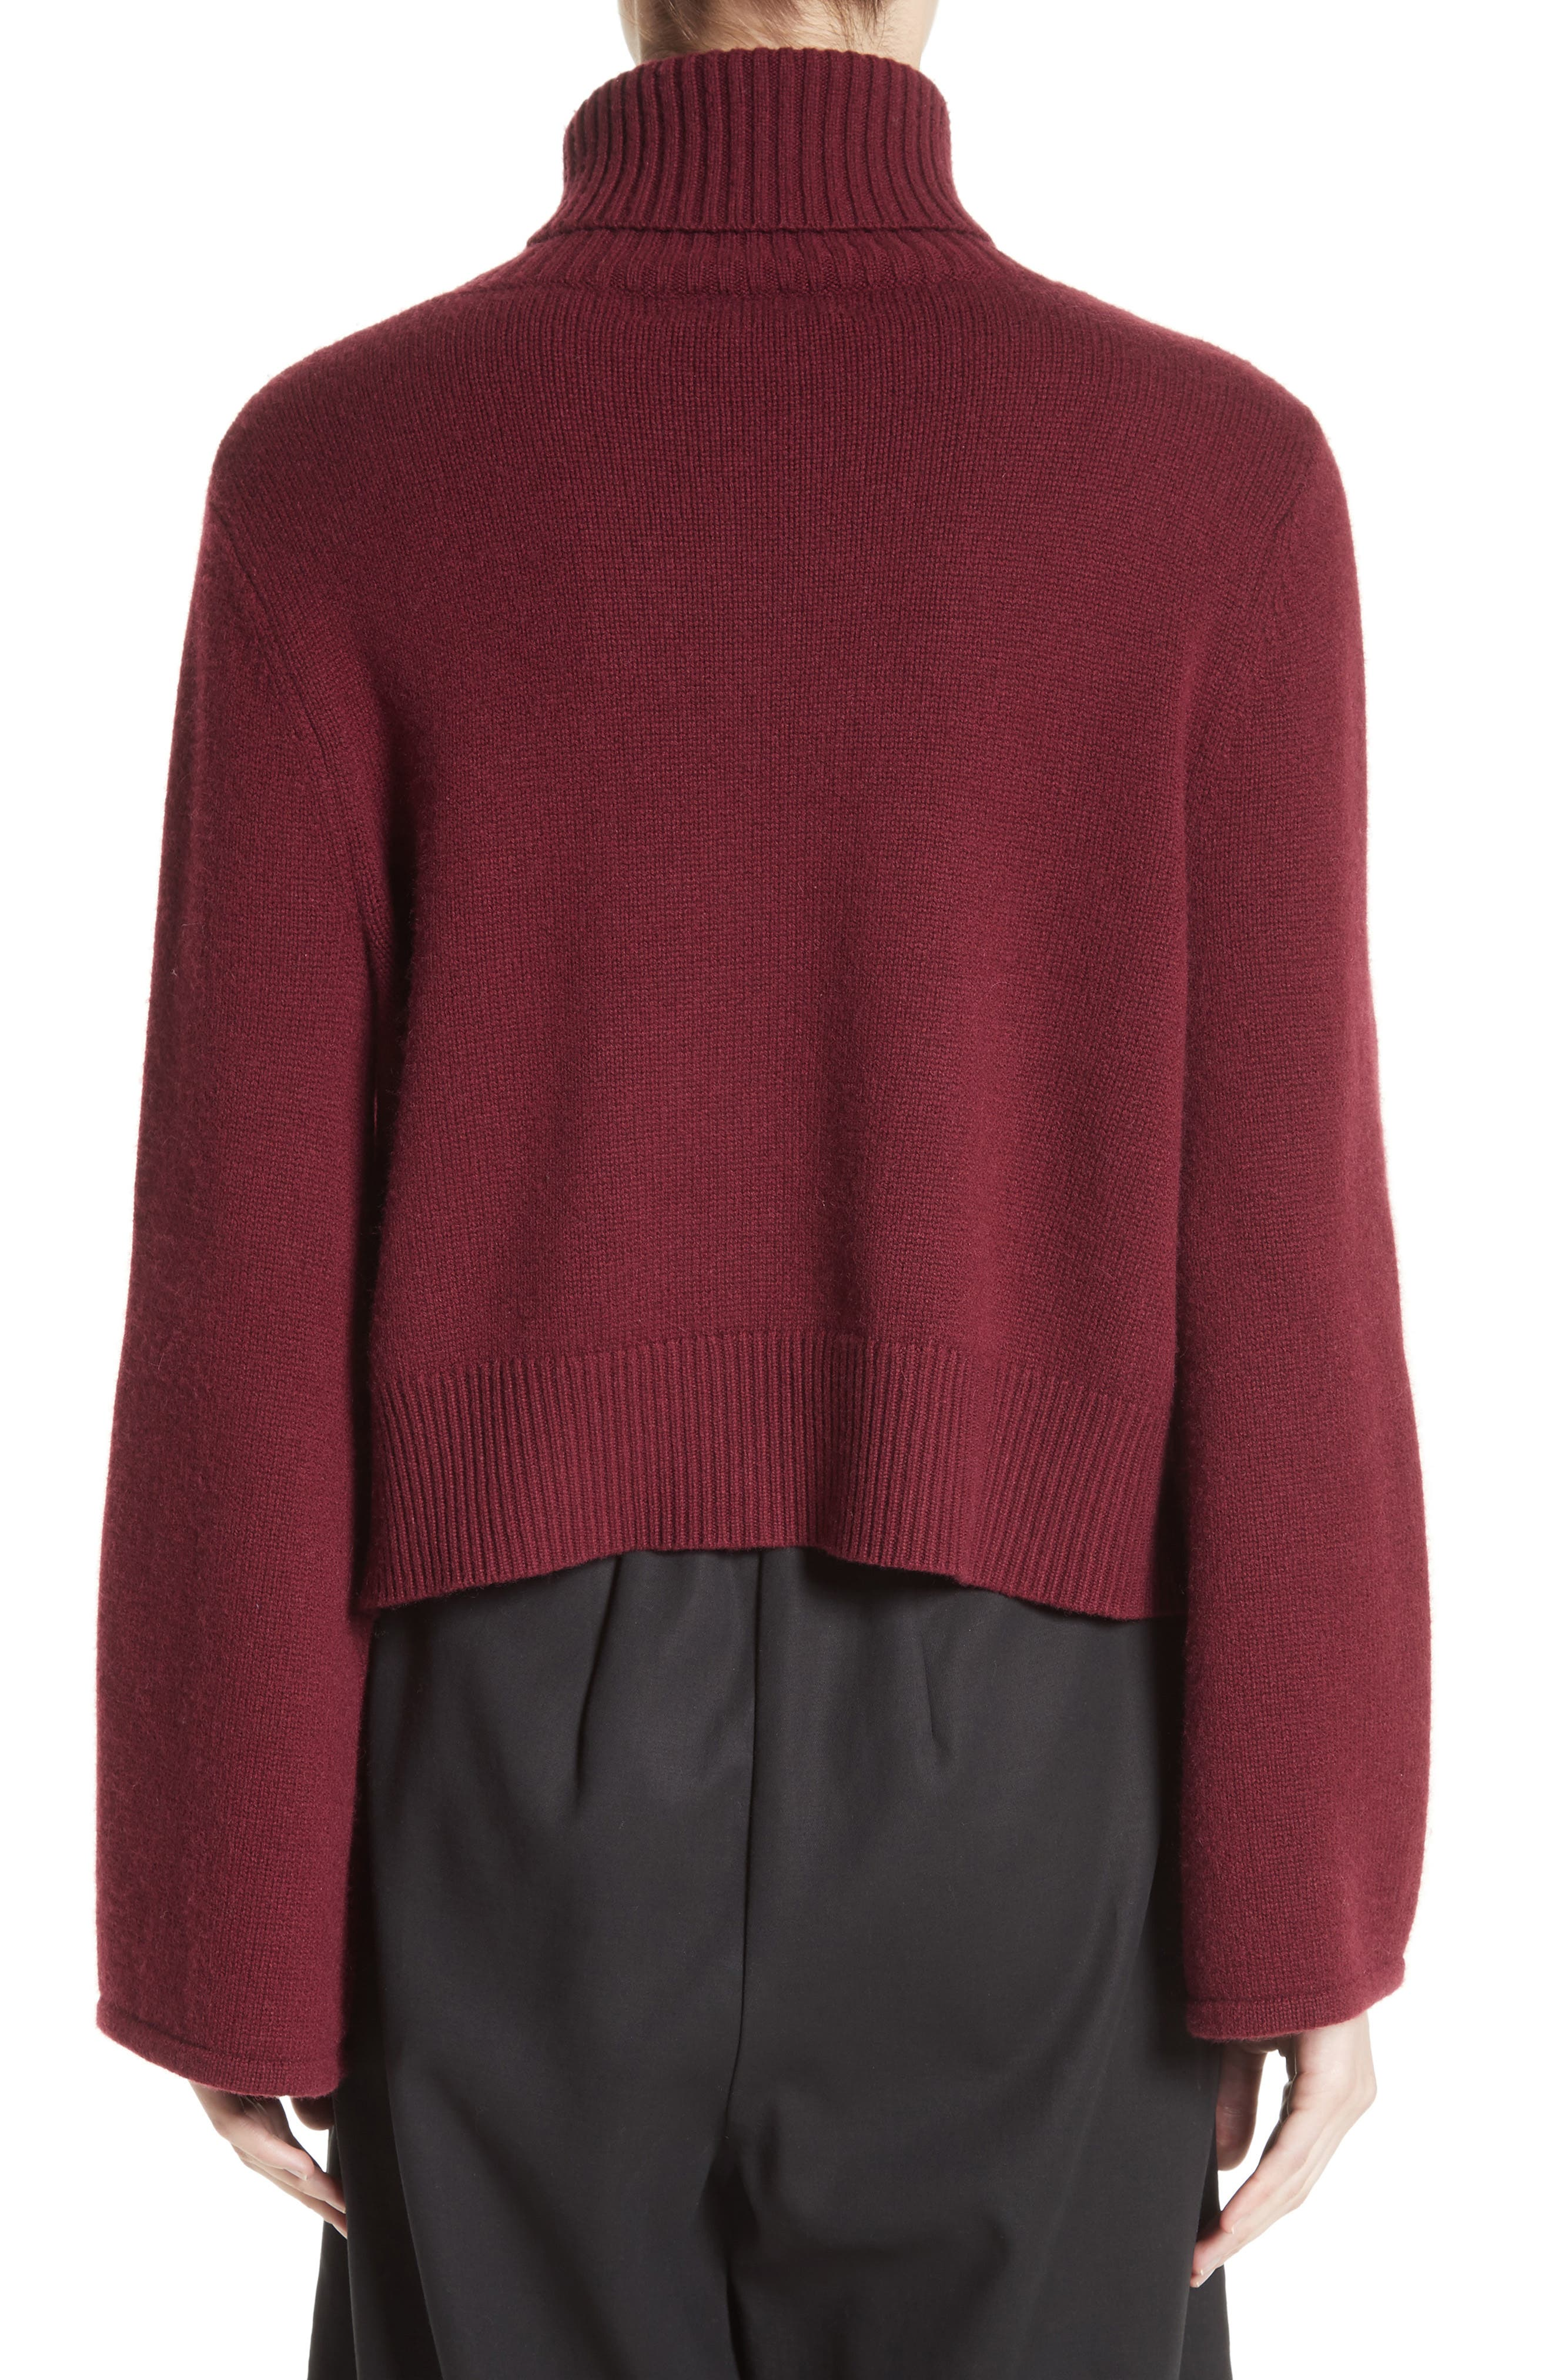 Bell Sleeve Wool & Cashmere Sweater,                             Alternate thumbnail 2, color,                             930